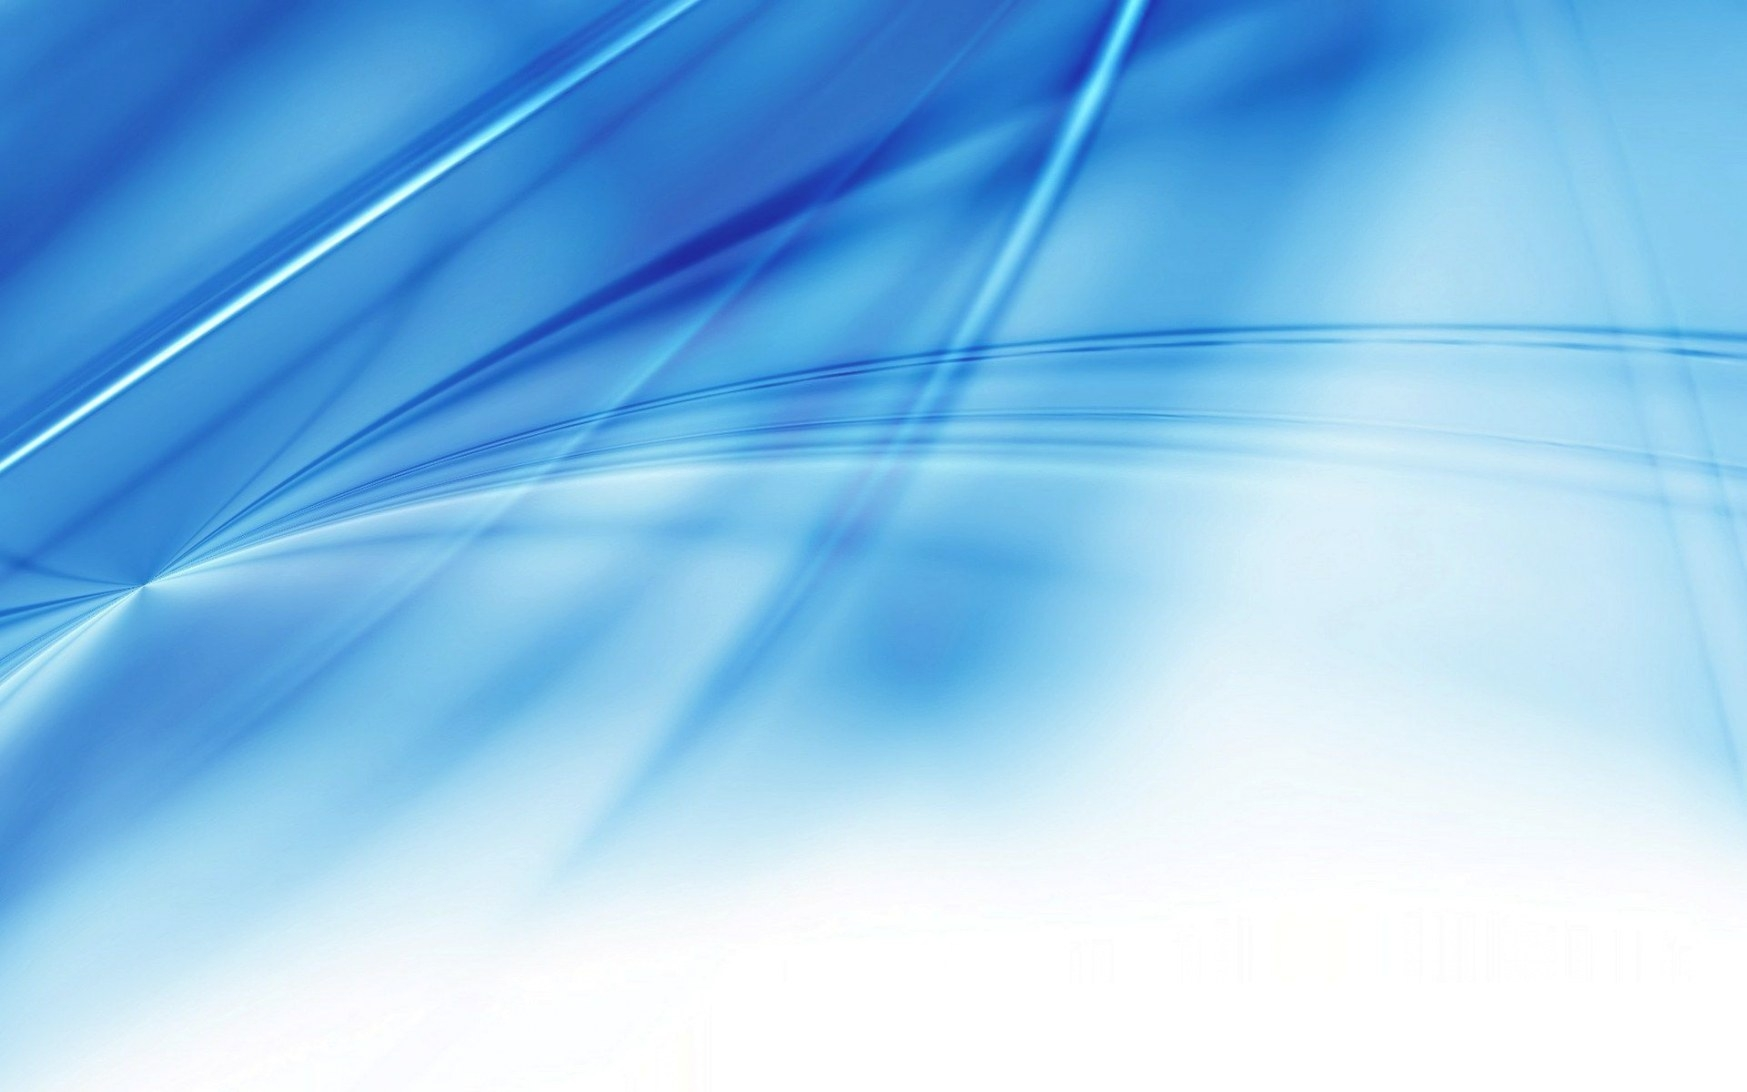 Blue And White Hd Wallpaper (With Images) | Blue intended for Blue And White Wallpaper